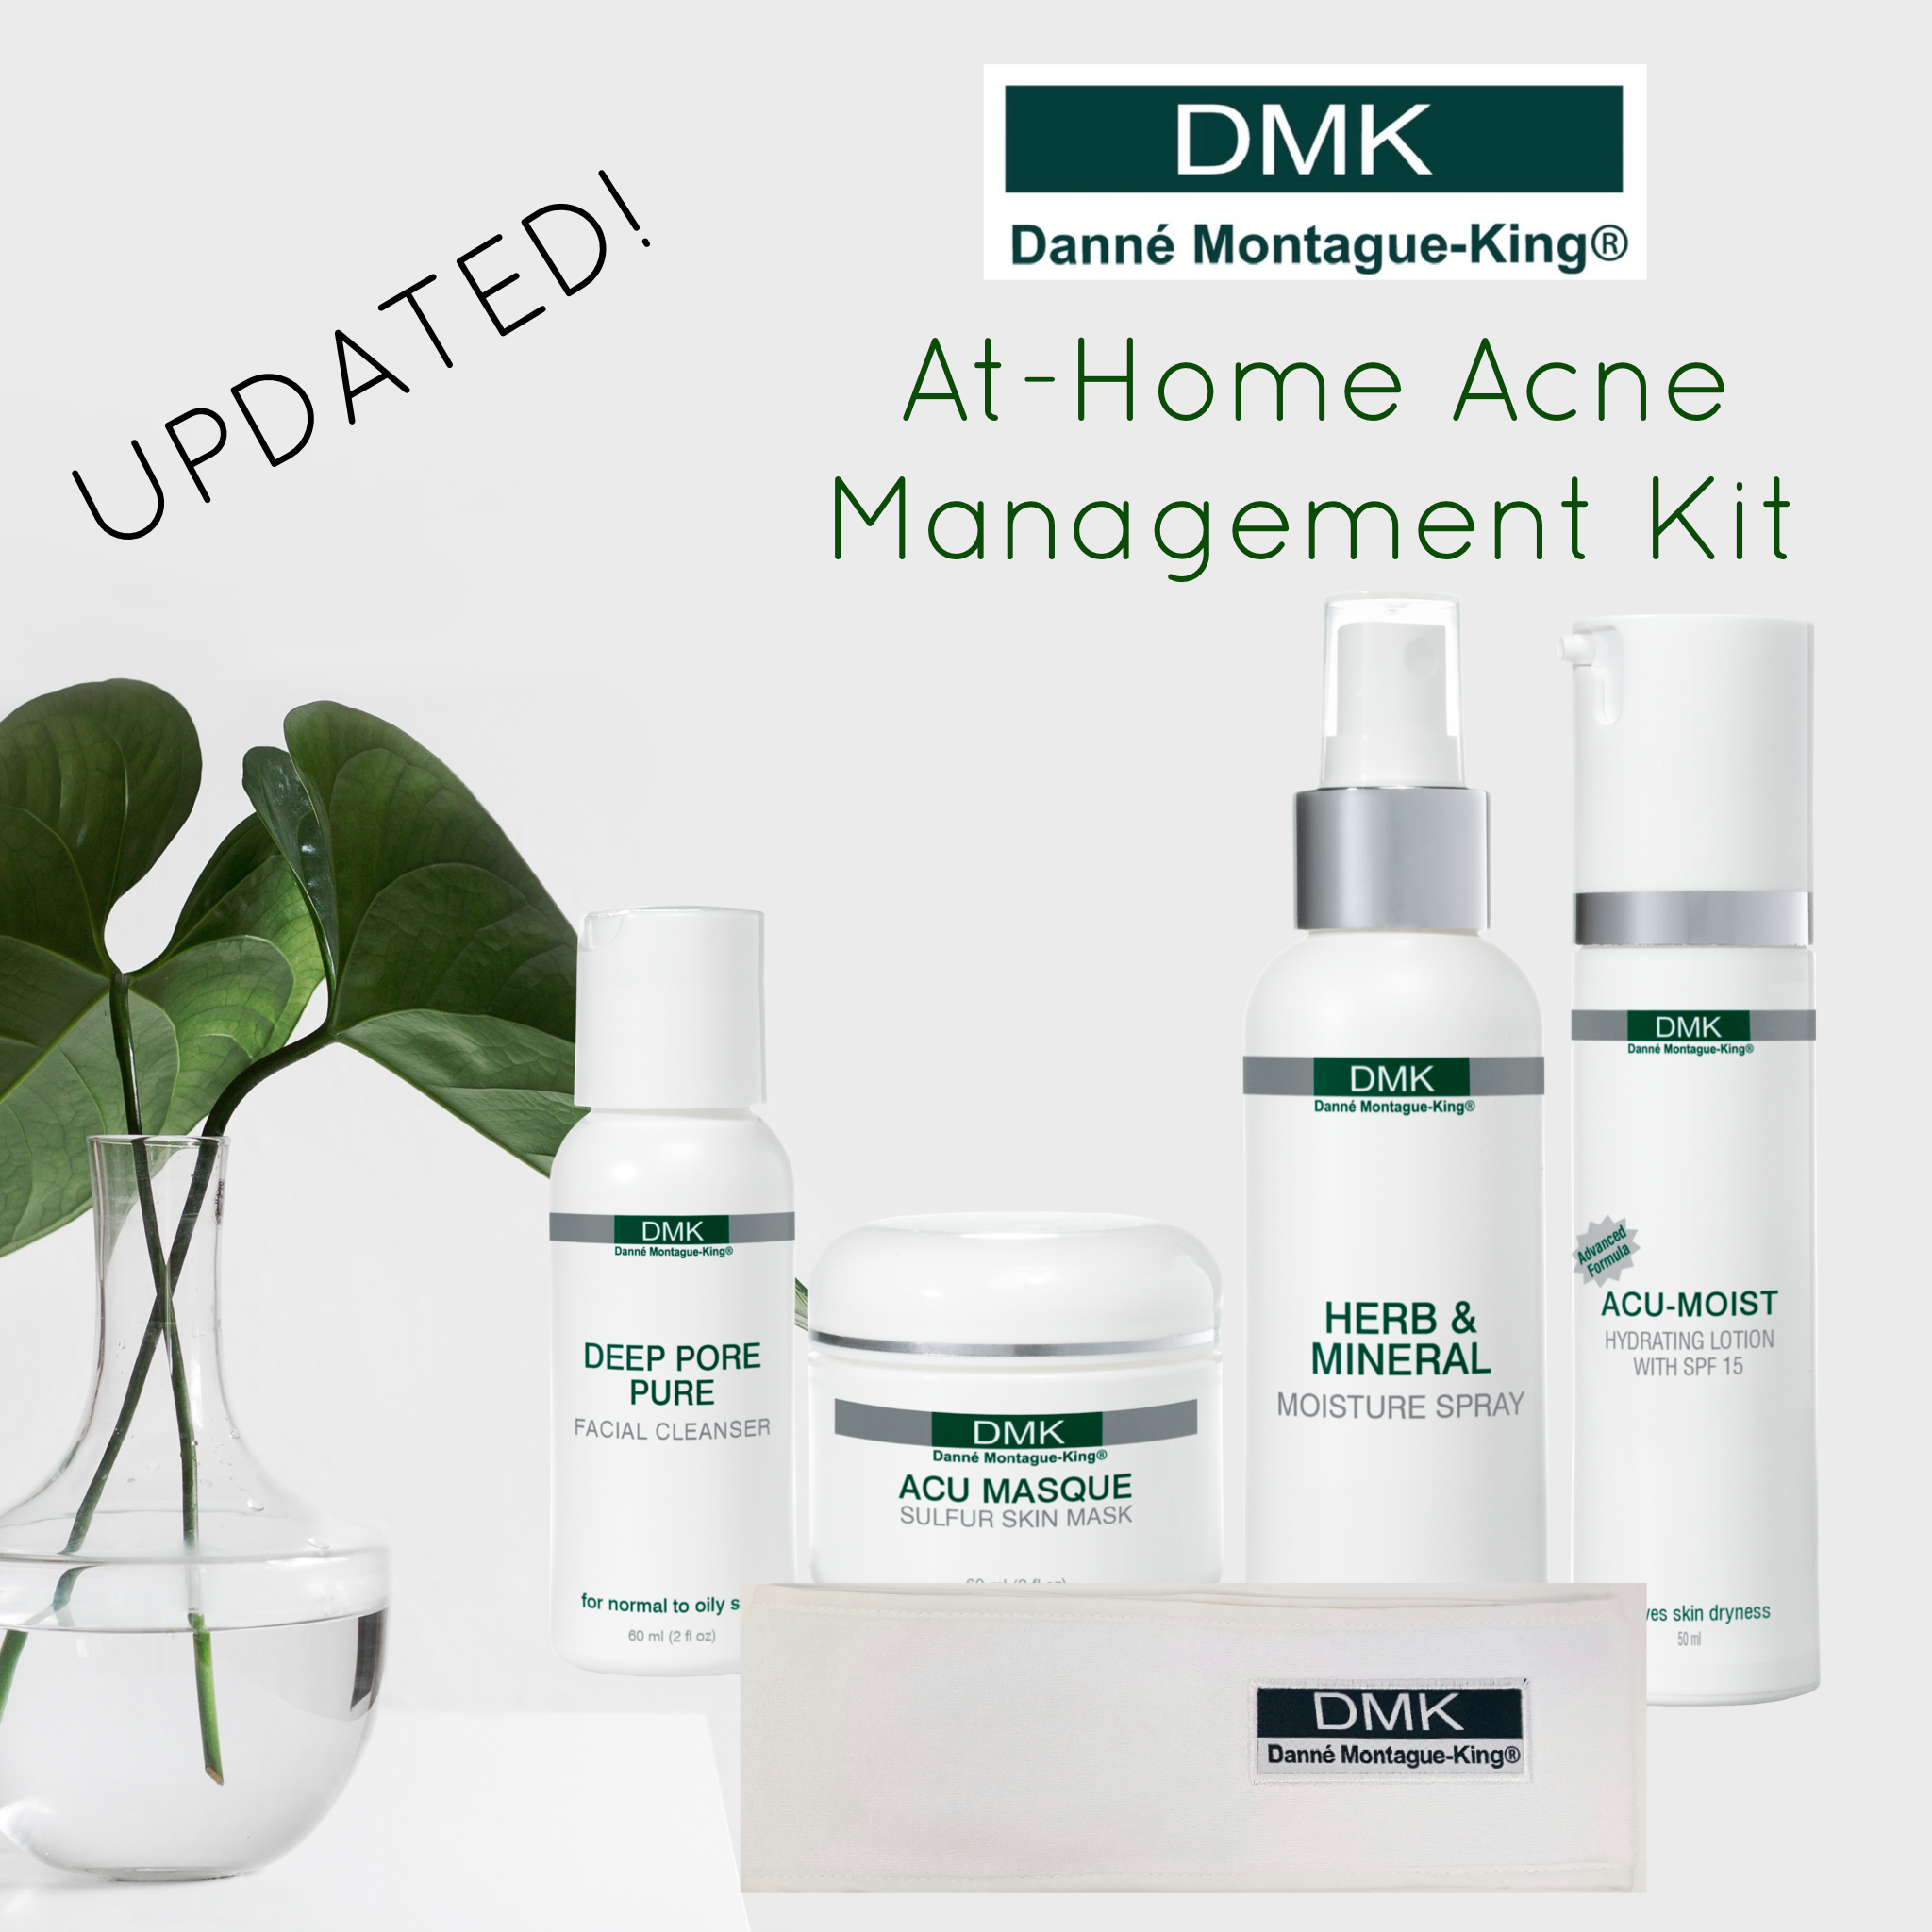 DMK Acne Management Kit